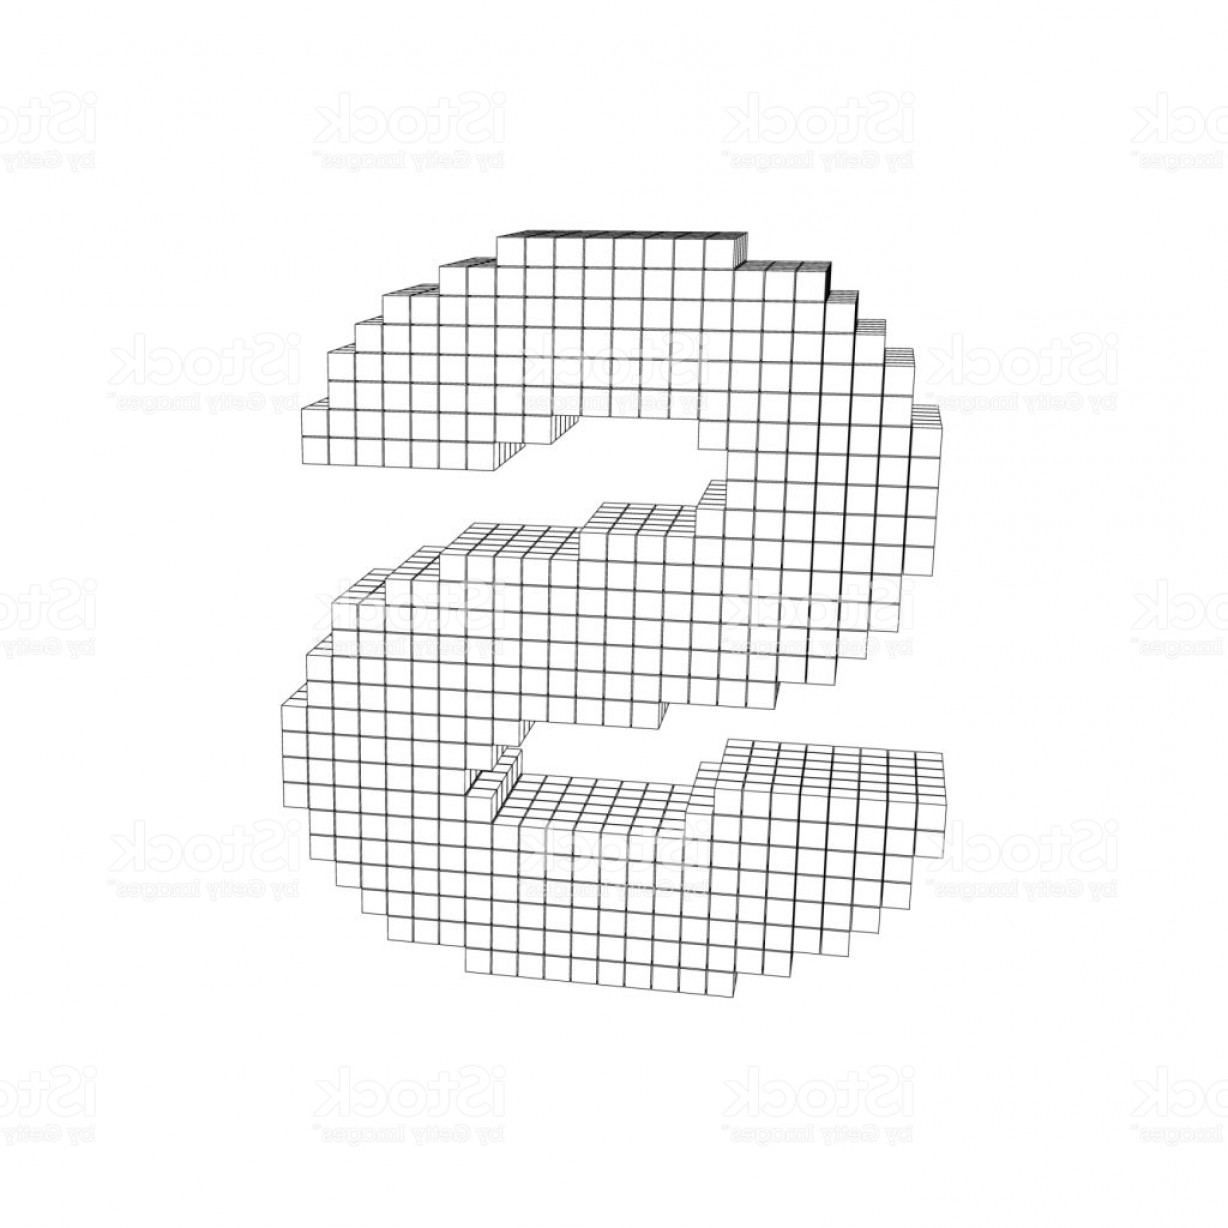 Pixelation Photoshop Vector: D Pixelated Capital Letter S Vector Outline Illustration Gm